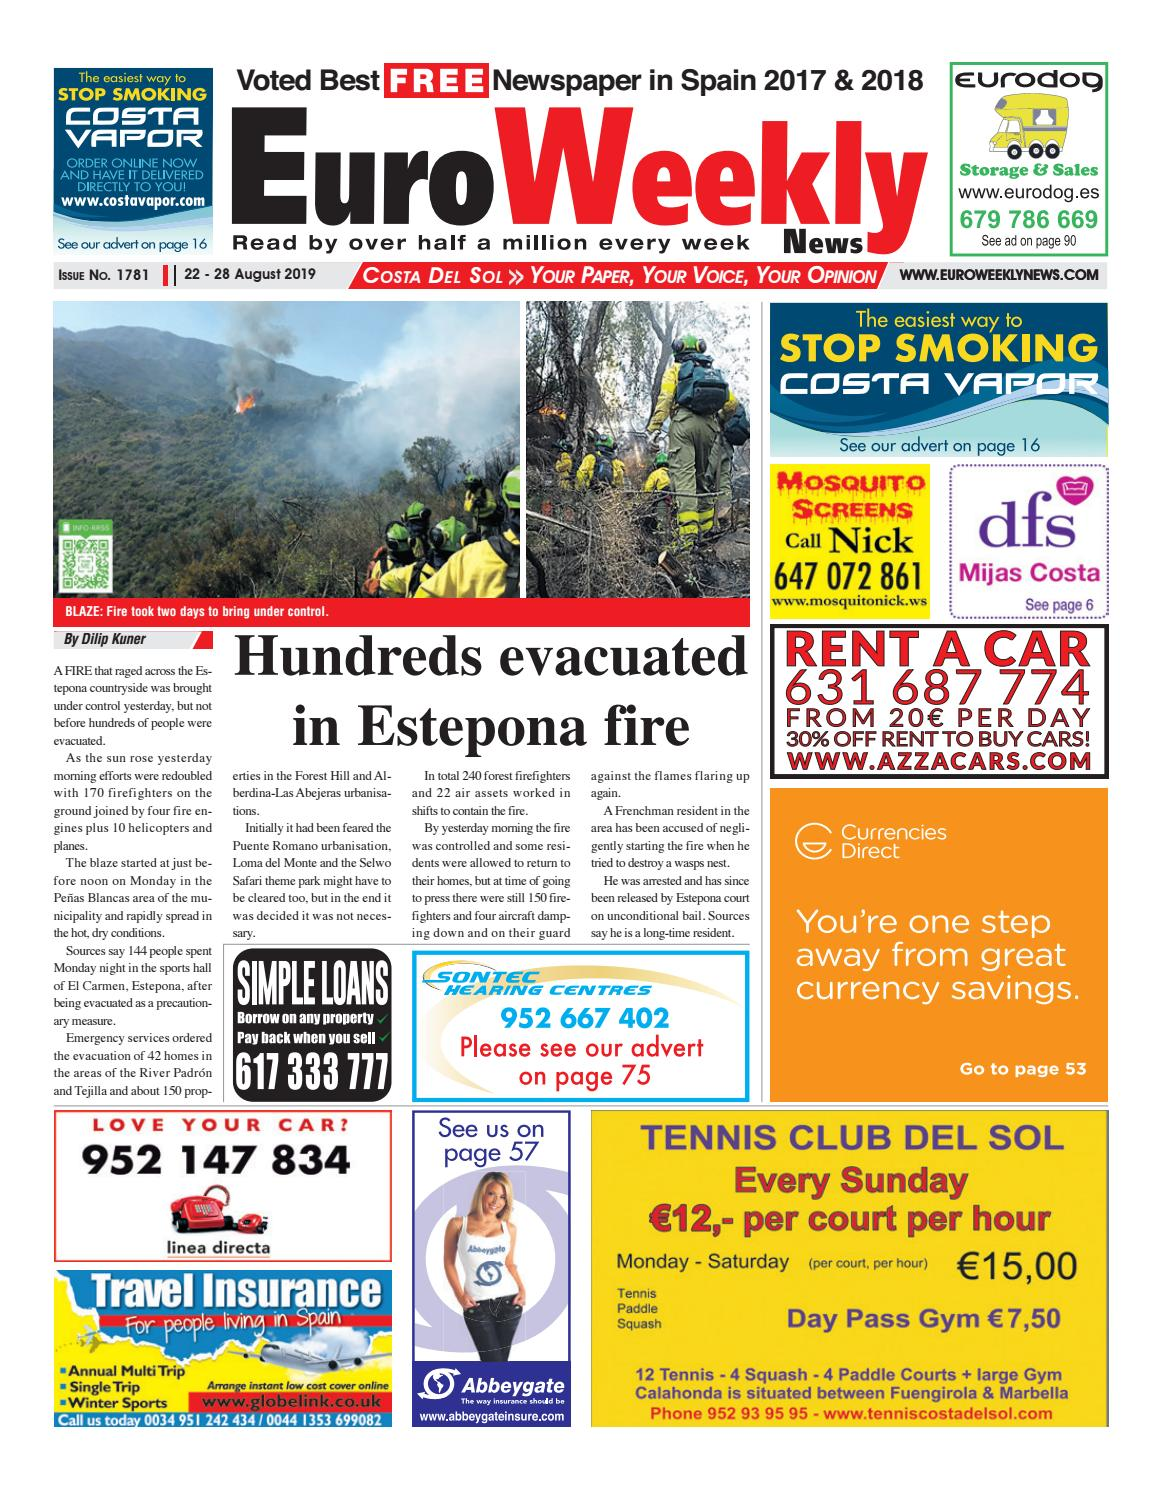 Euro Weekly News - Costa del Sol 22 - 28 August 2019 Issue